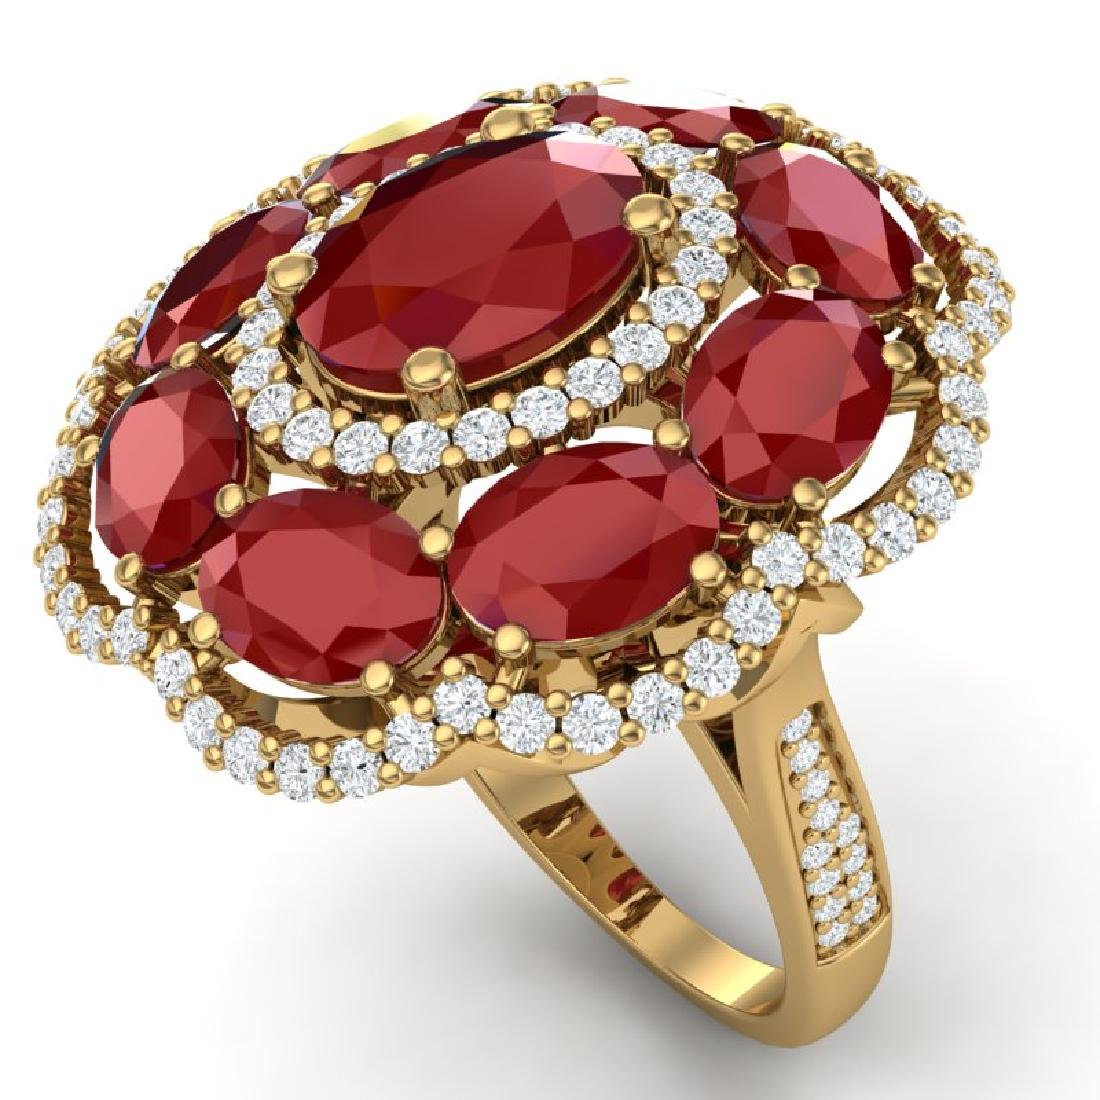 14.4 CTW Royalty Designer Ruby & VS Diamond Ring 18K